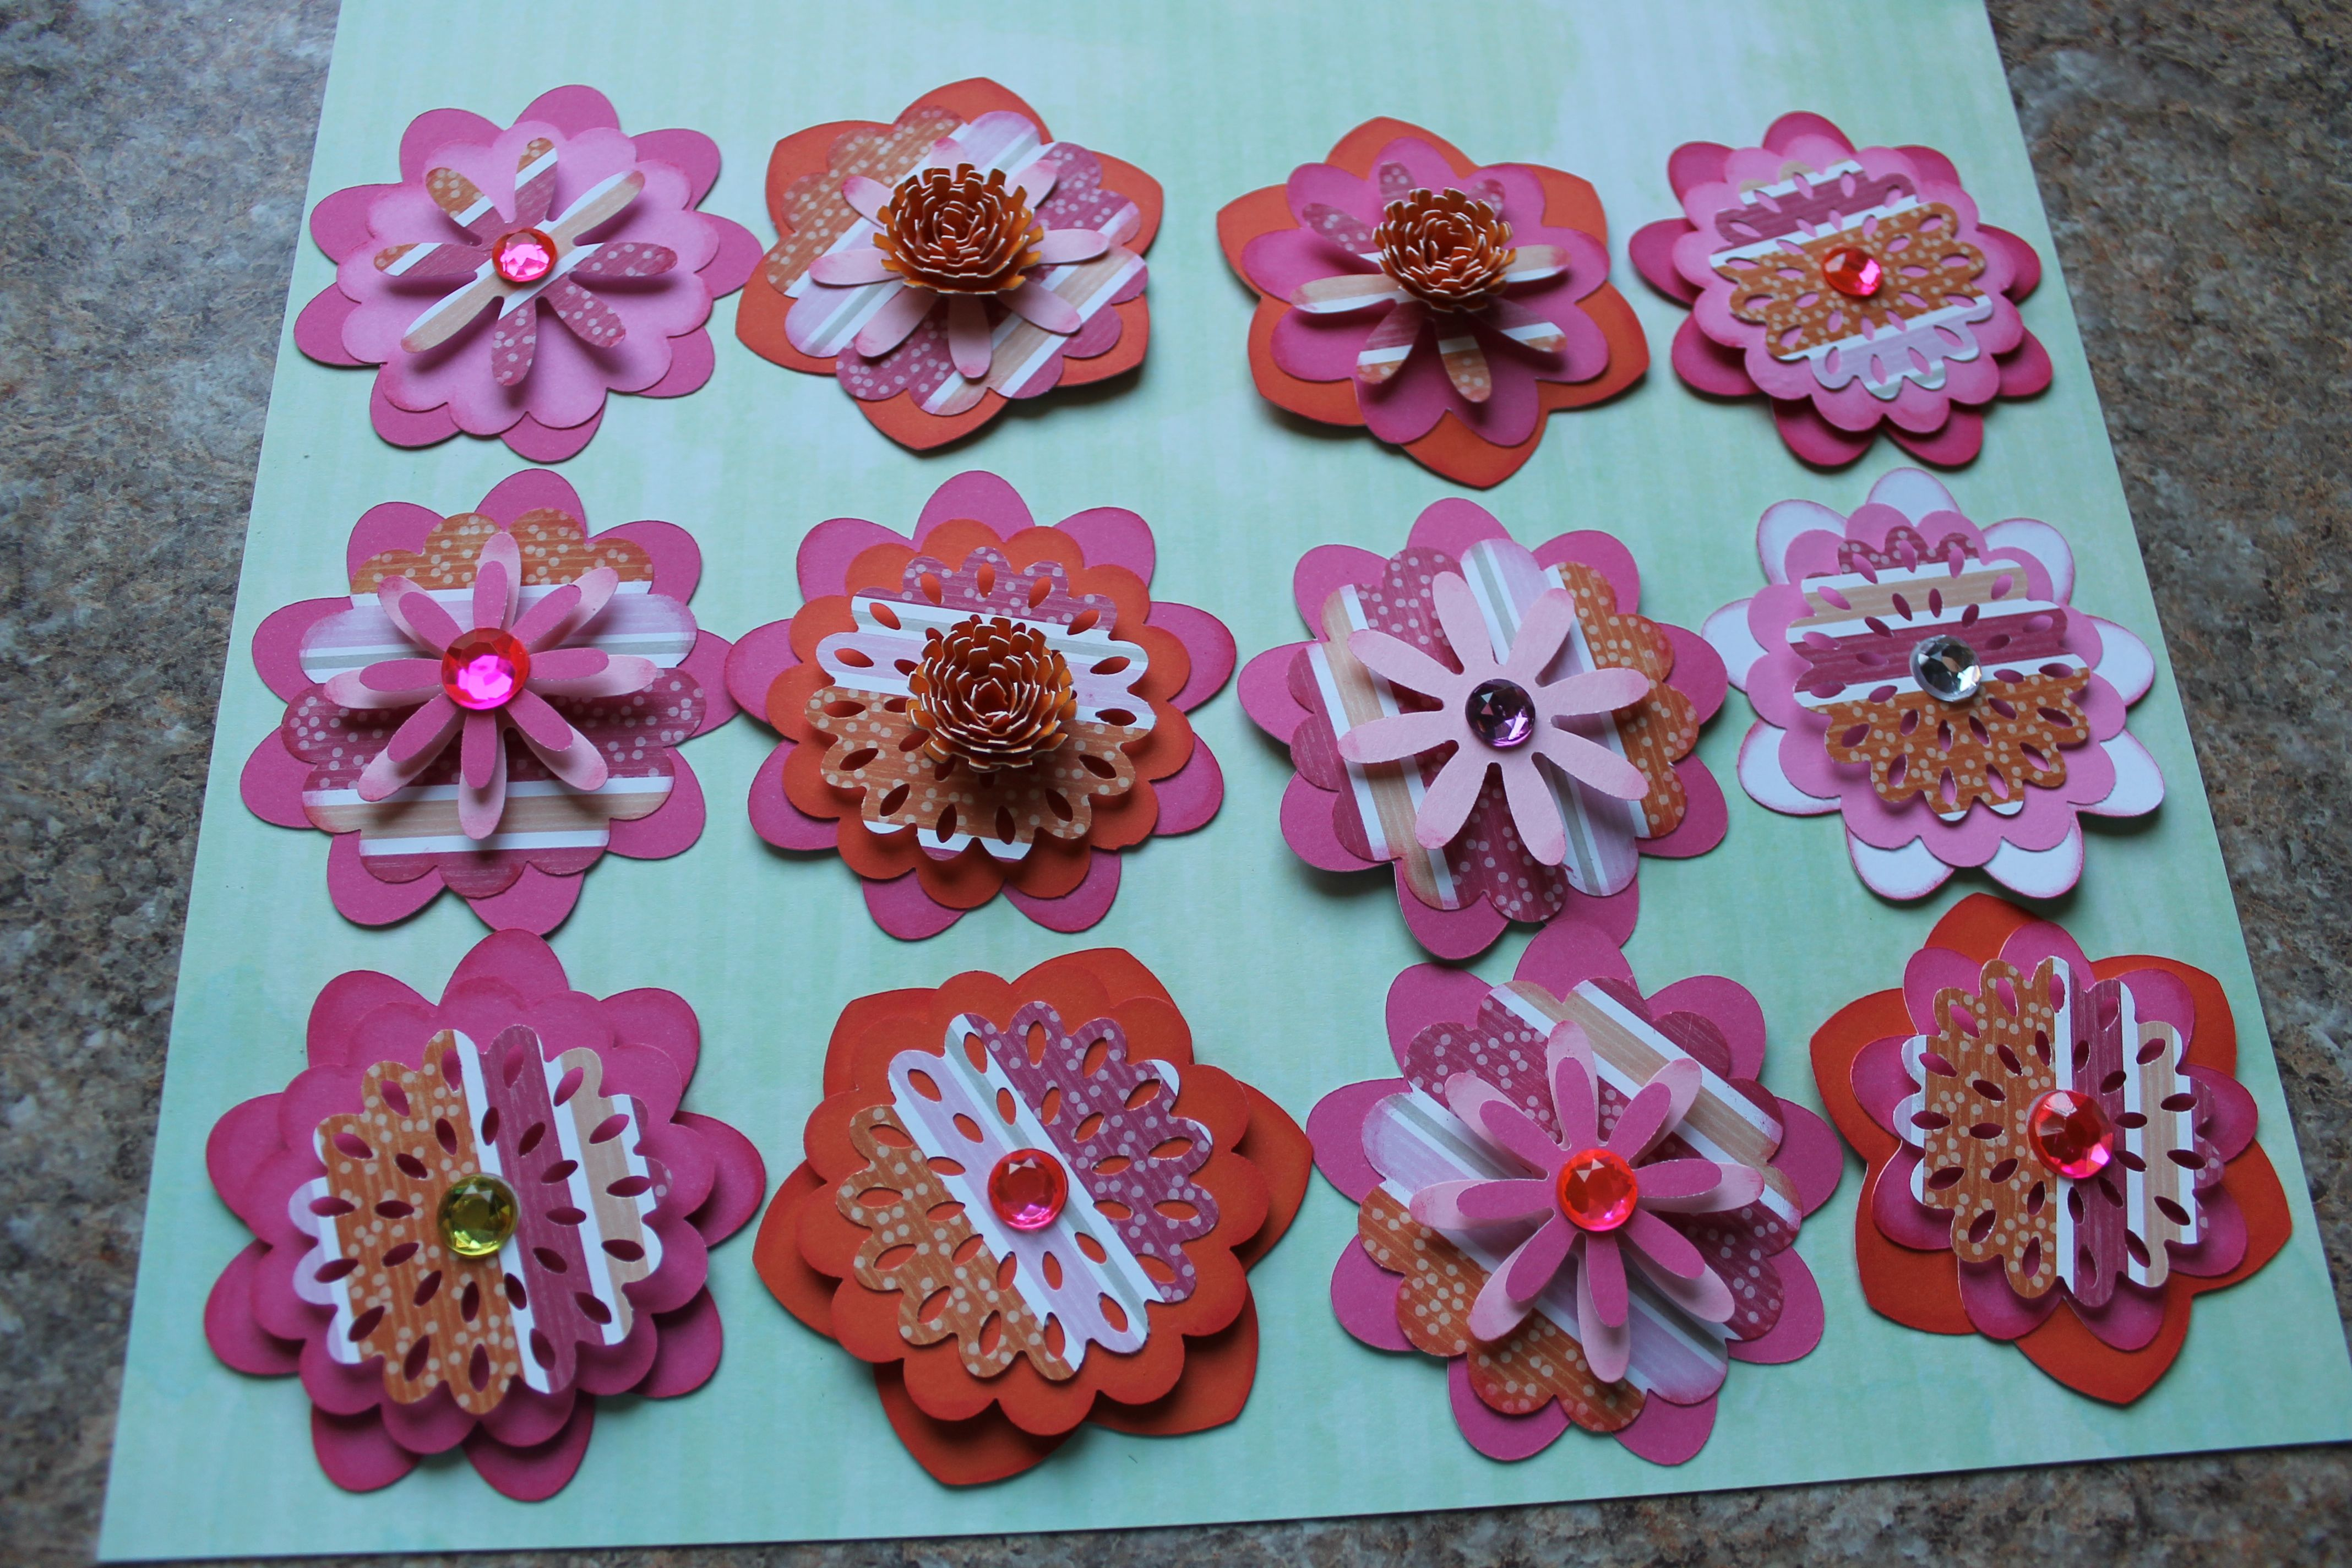 One Of My Favorite Sets Of Handmade Paper Flowers For Scrapbooking